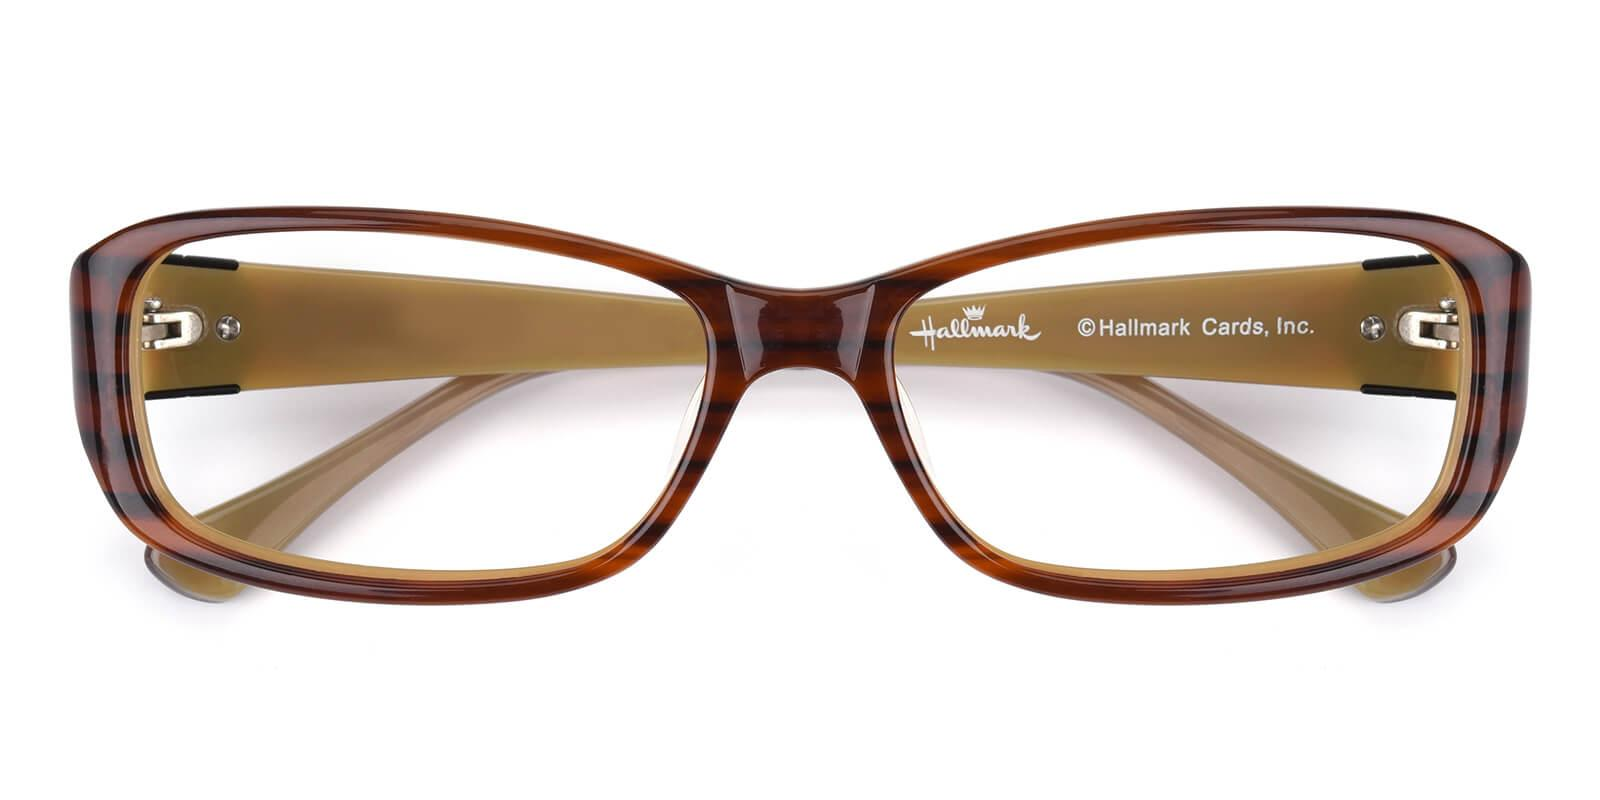 Hgytical-Tortoise-Rectangle-Acetate-Eyeglasses-detail